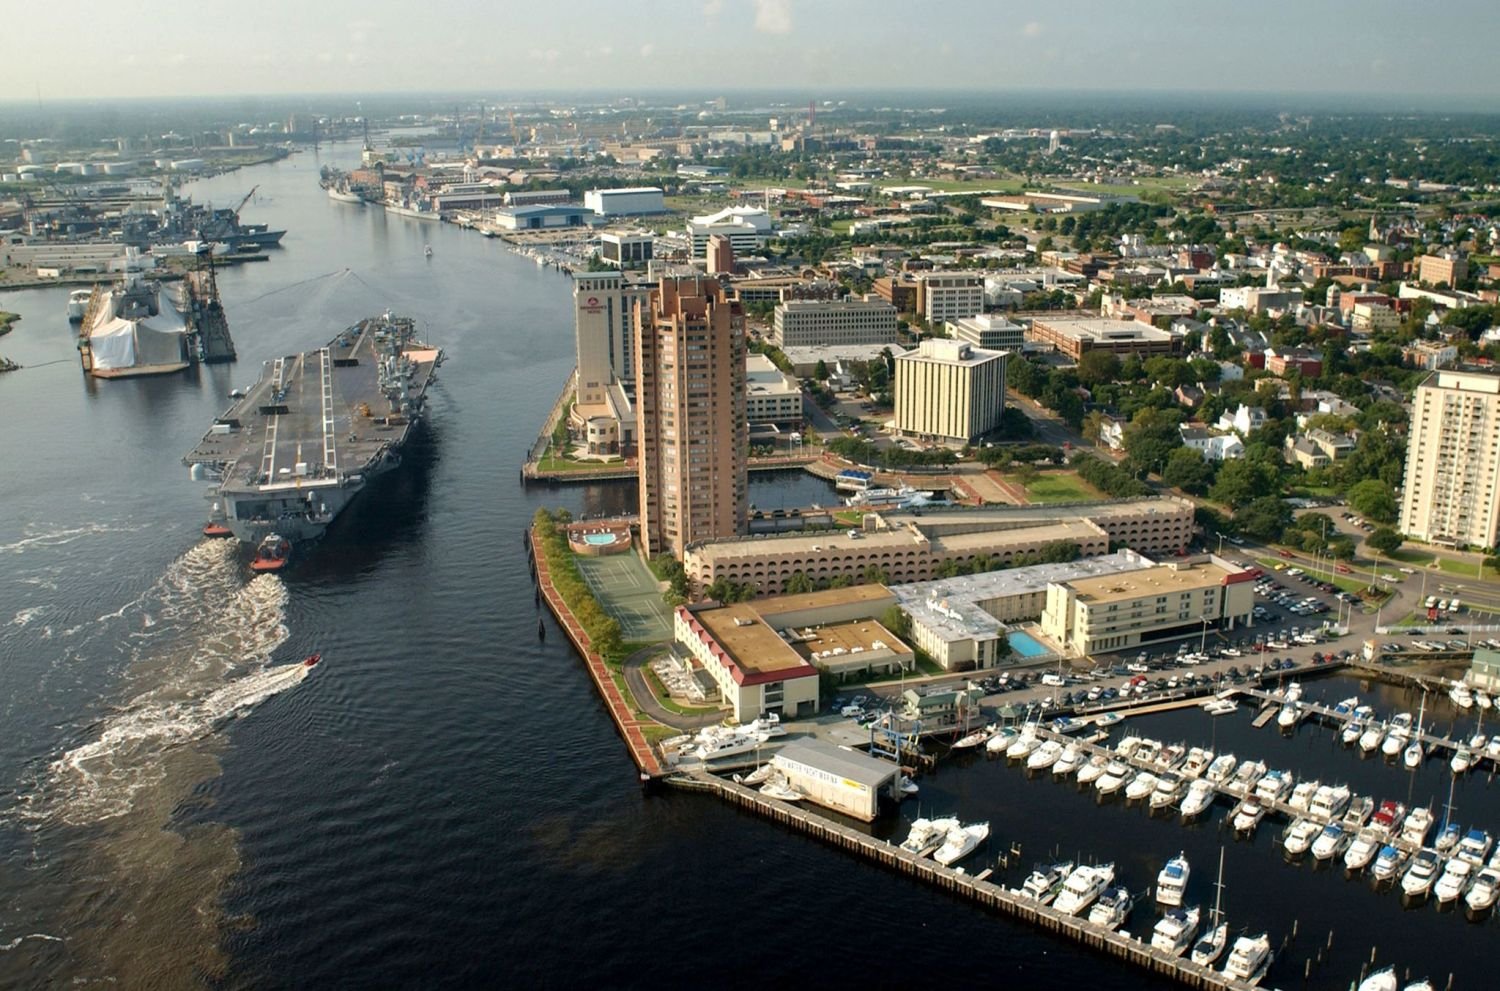 The Elizabeth River passes by Portsmouth, Virginia, before draining into the Chesapeake Bay. Portsmouth has one of the highest rates of sea level rise on the East Coast. Photo via Wikimedia Commons